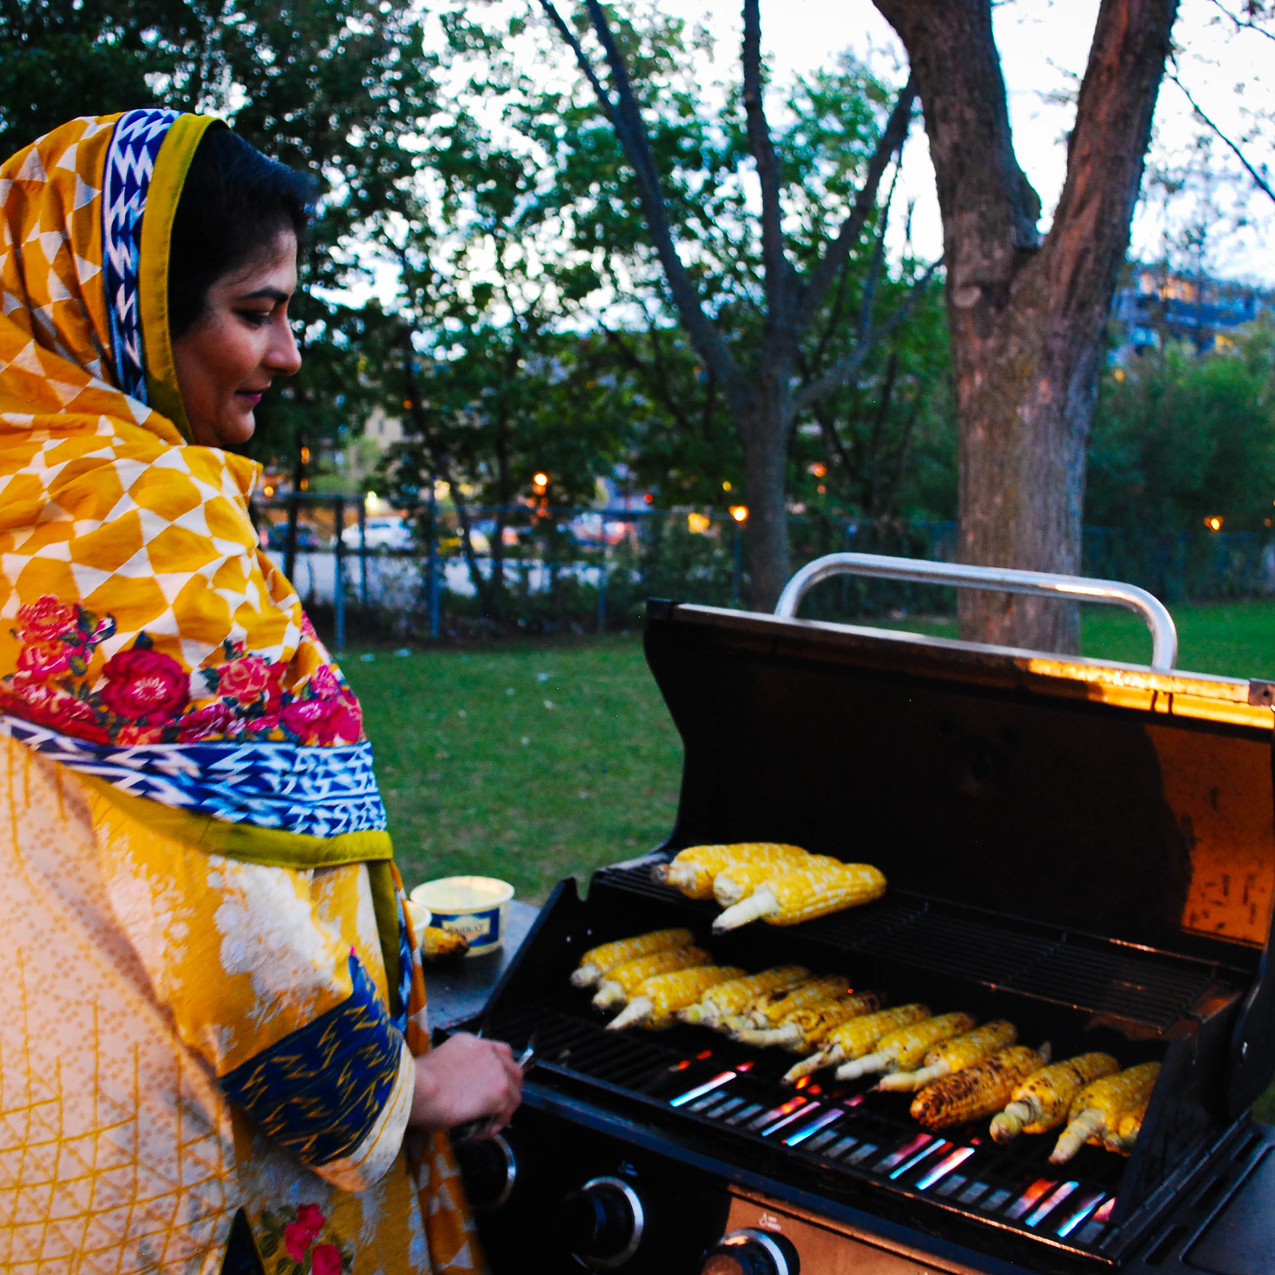 Corn Vendor in R.V. Burgess Park